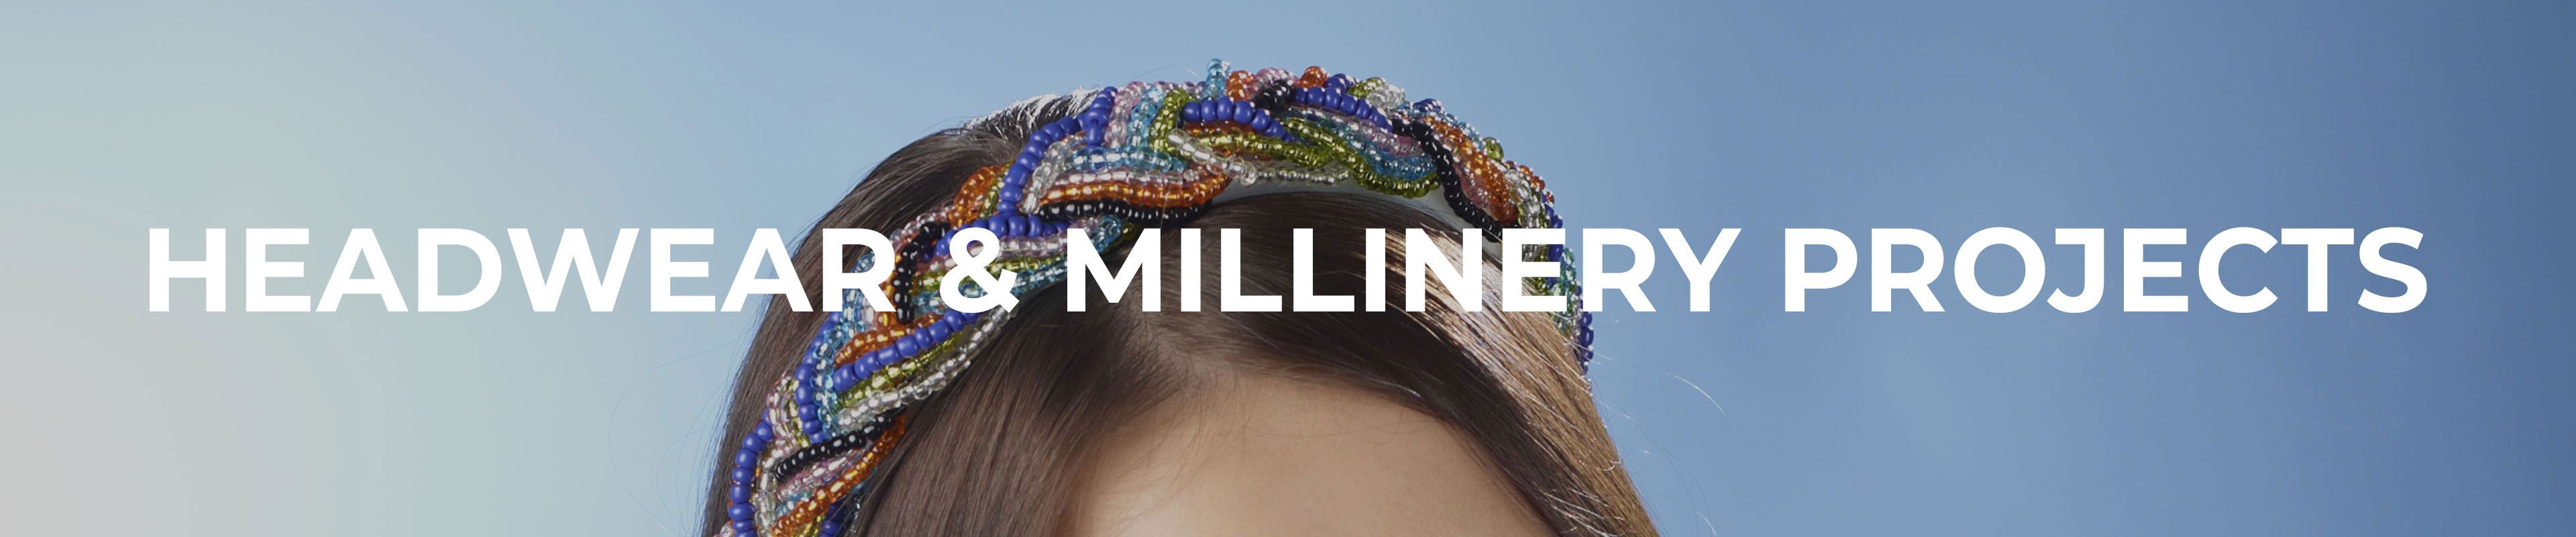 Headwear & Millinery Projects